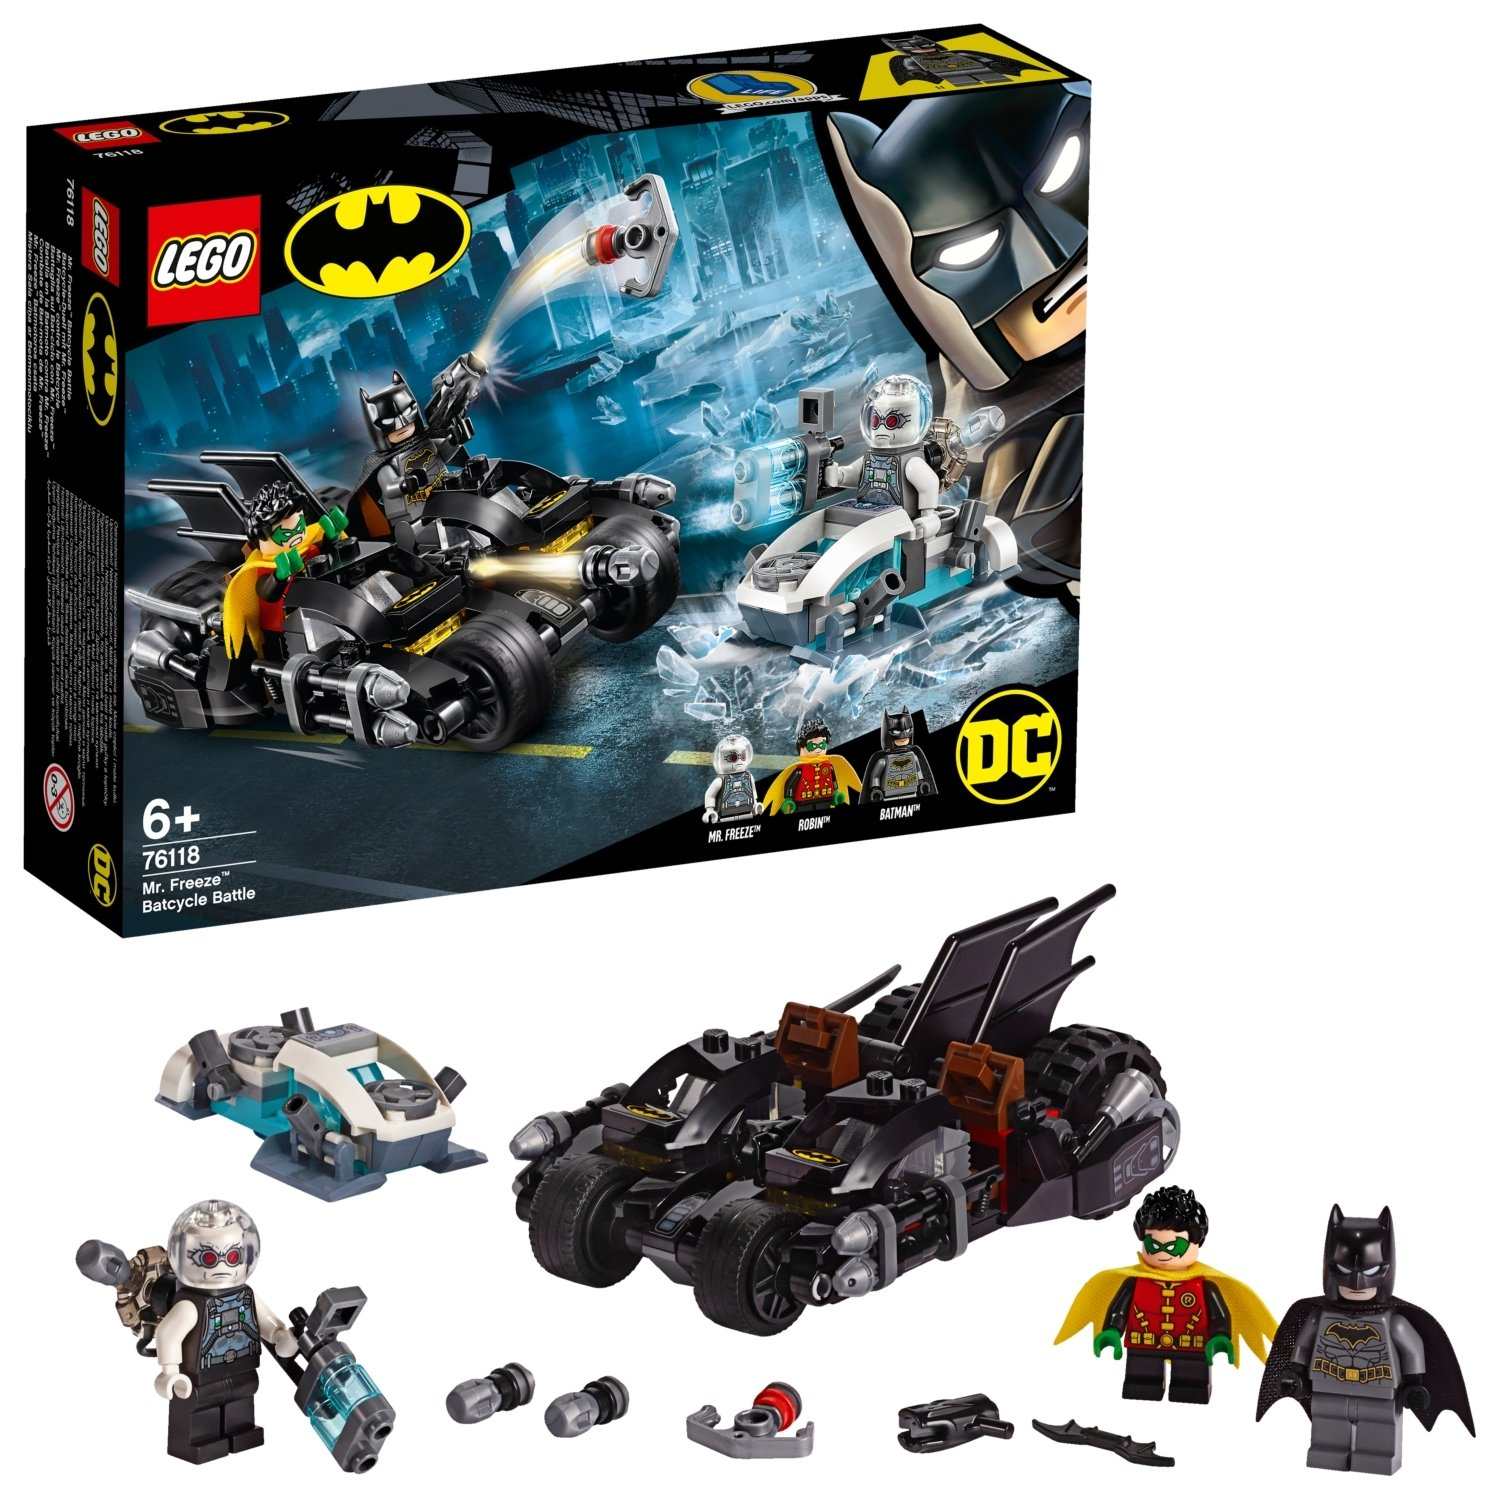 LEGO Super Heroes Batman Twin Bike - 76118